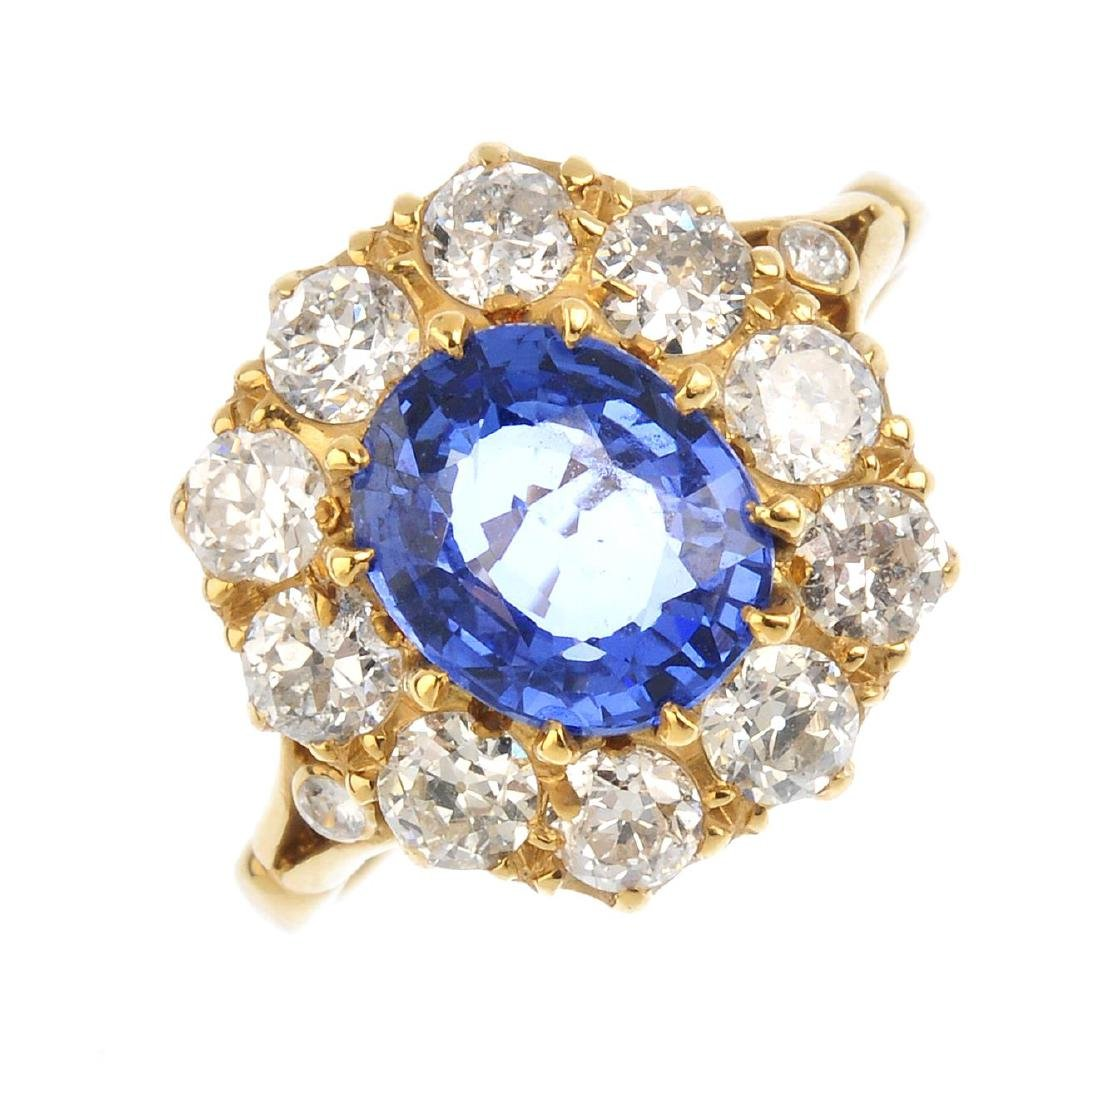 A sapphire and diamond cluster ring. The oval-shape